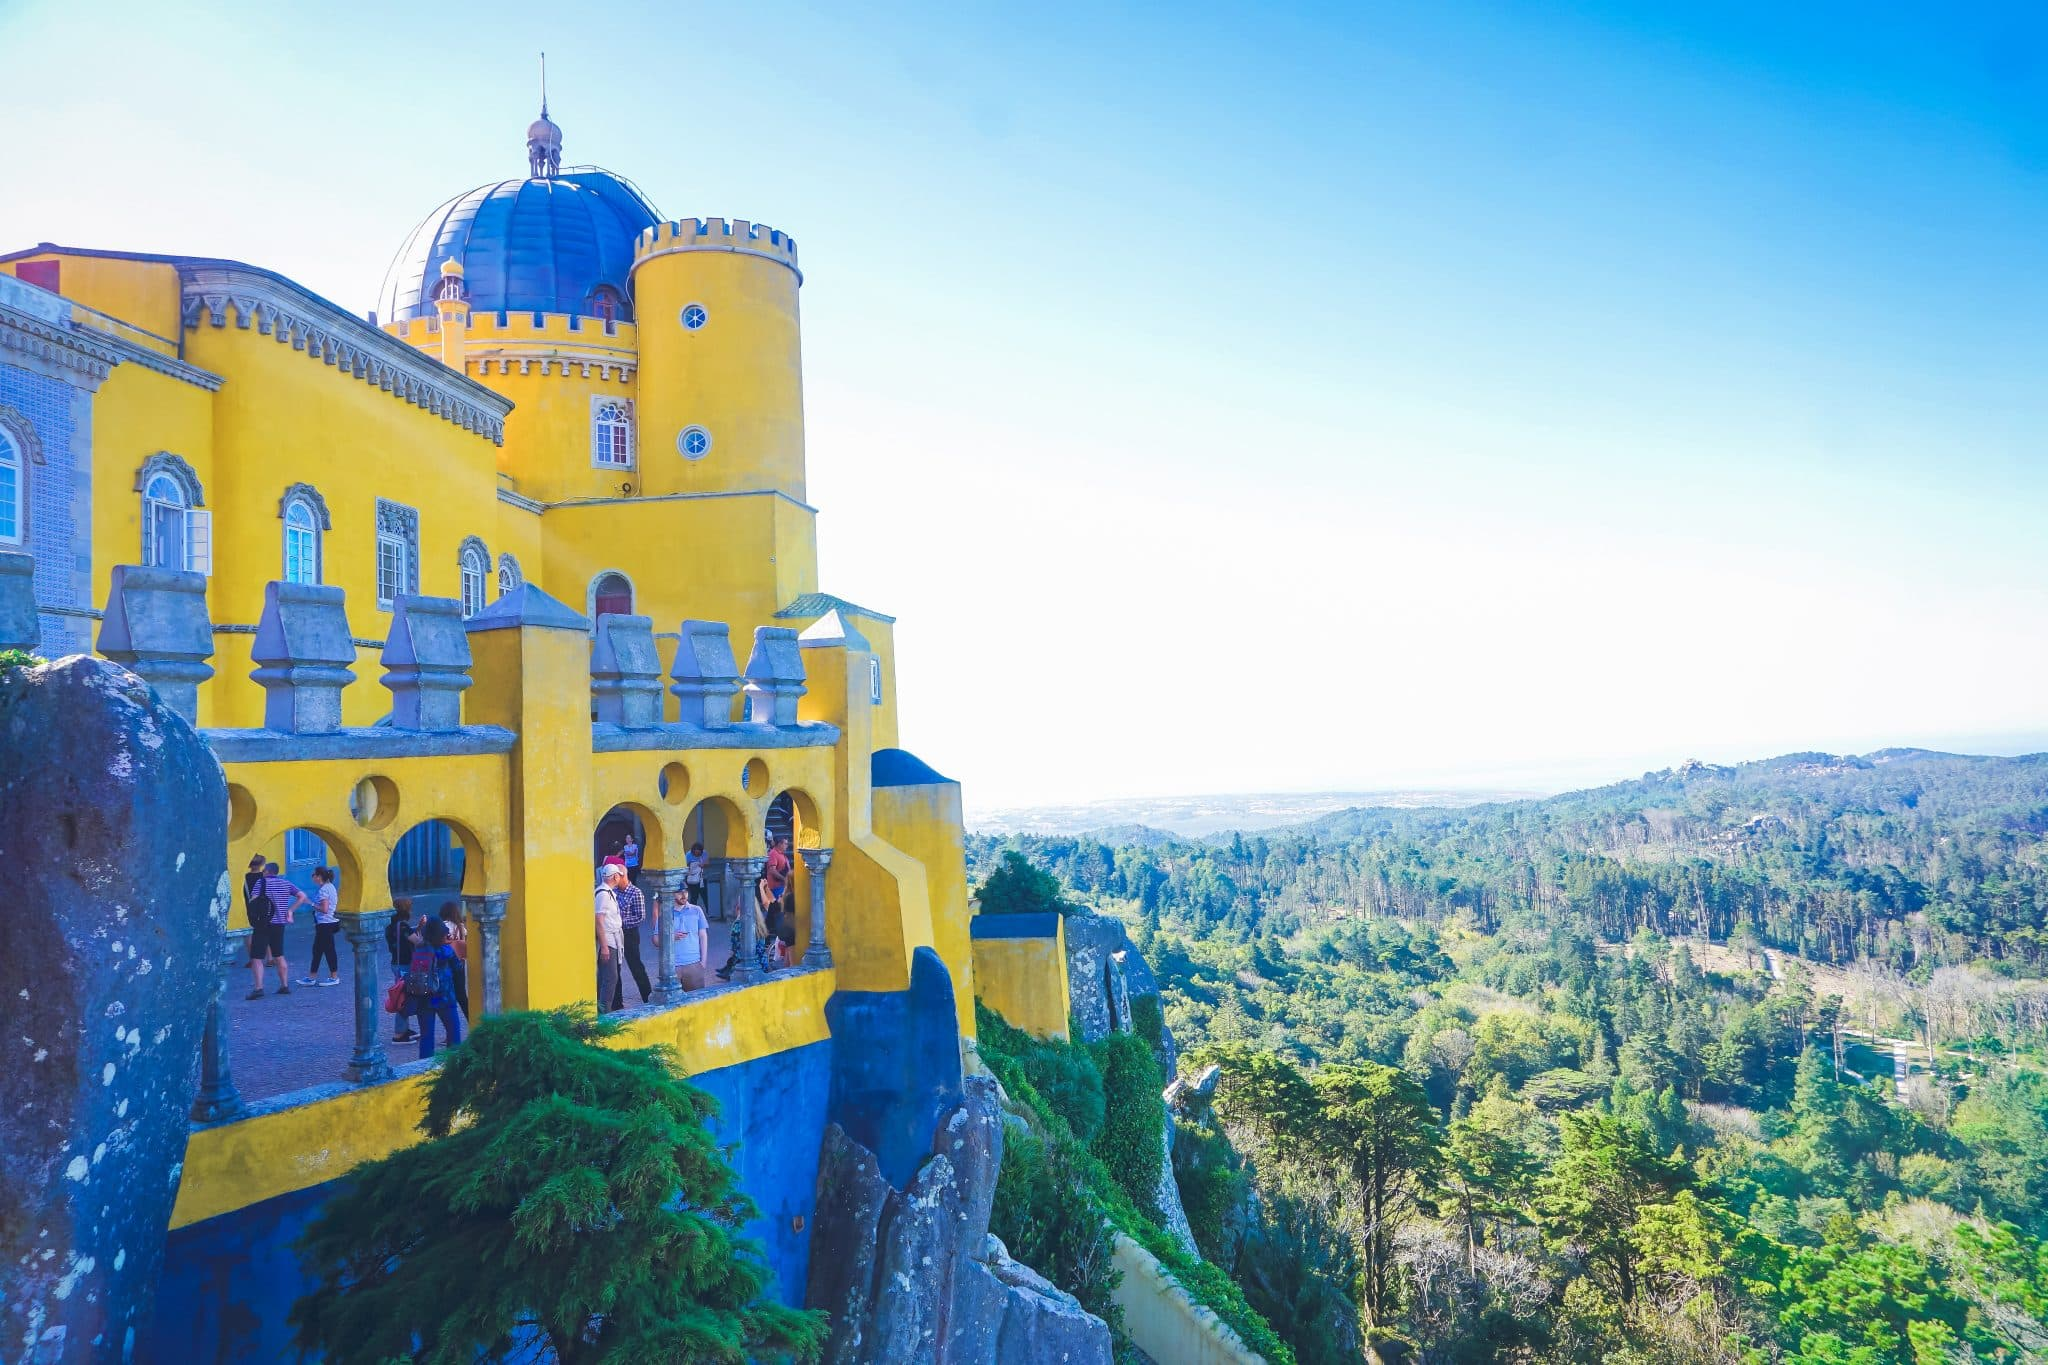 Pena Palace overlooking the valley of Sintra, with green forests, a perfect day trip from Lisbon, Portugal.